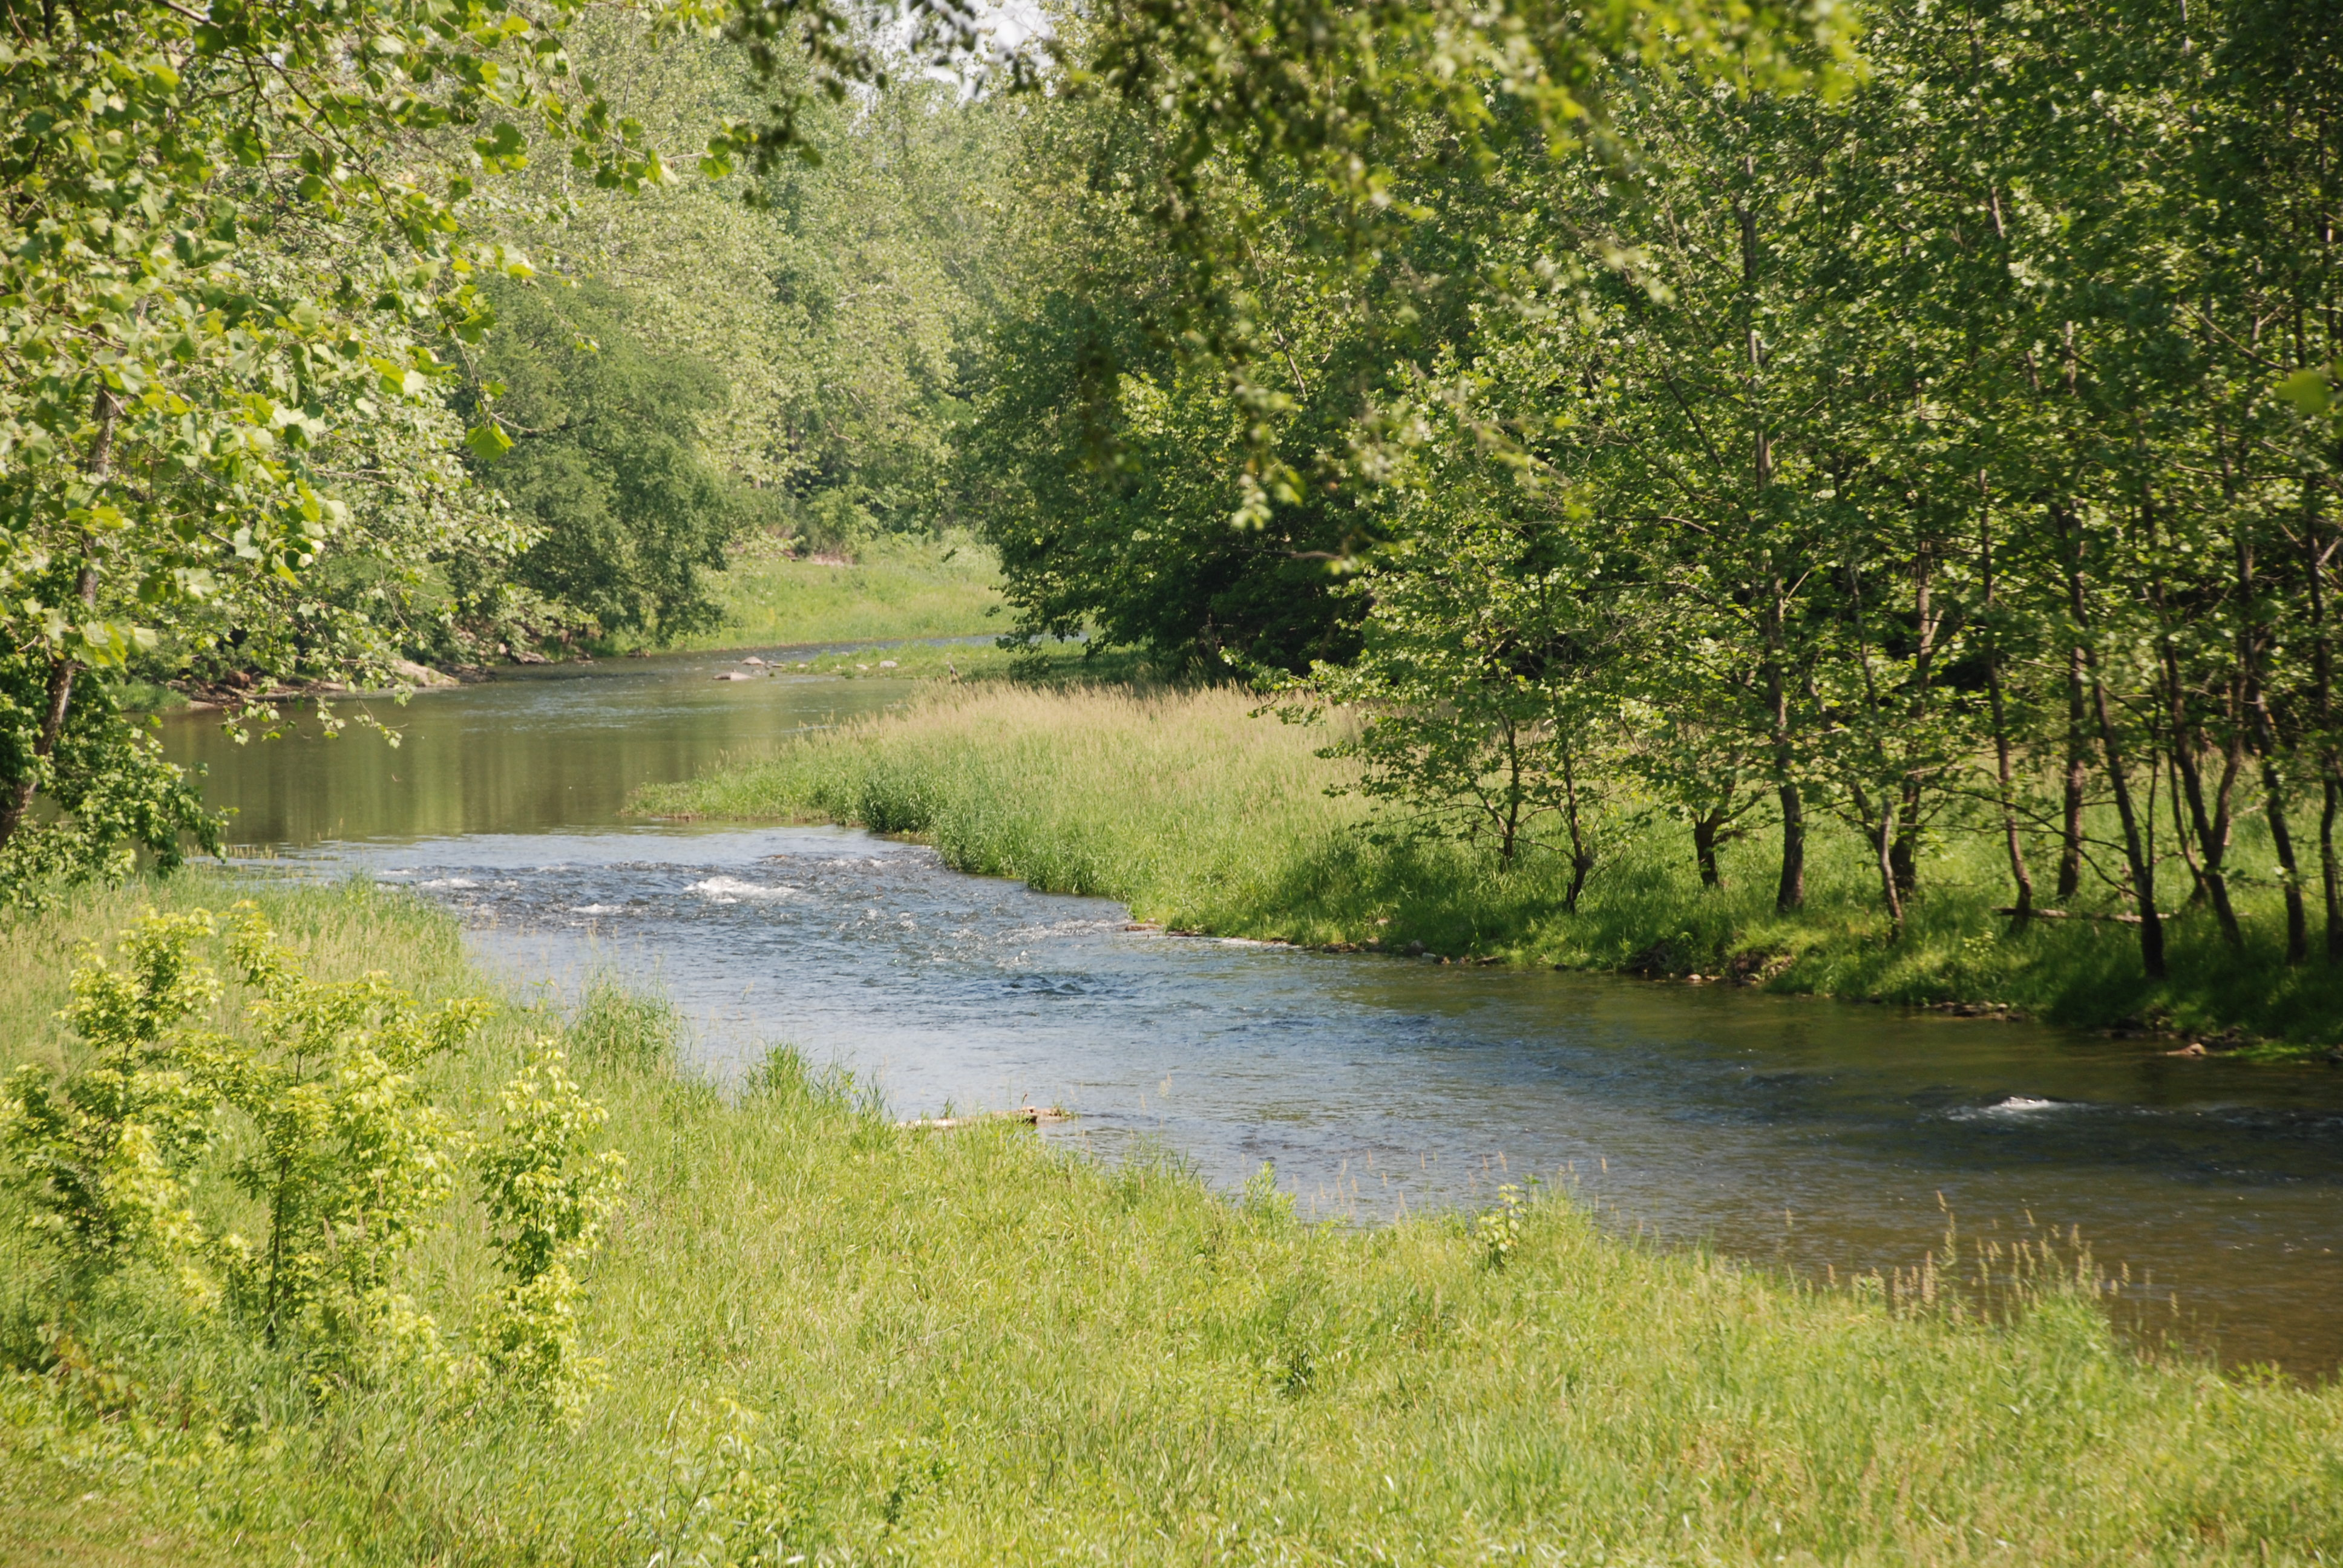 Tailwaters of brookville indiana recipesfrommykitchen for Trout fishing indiana